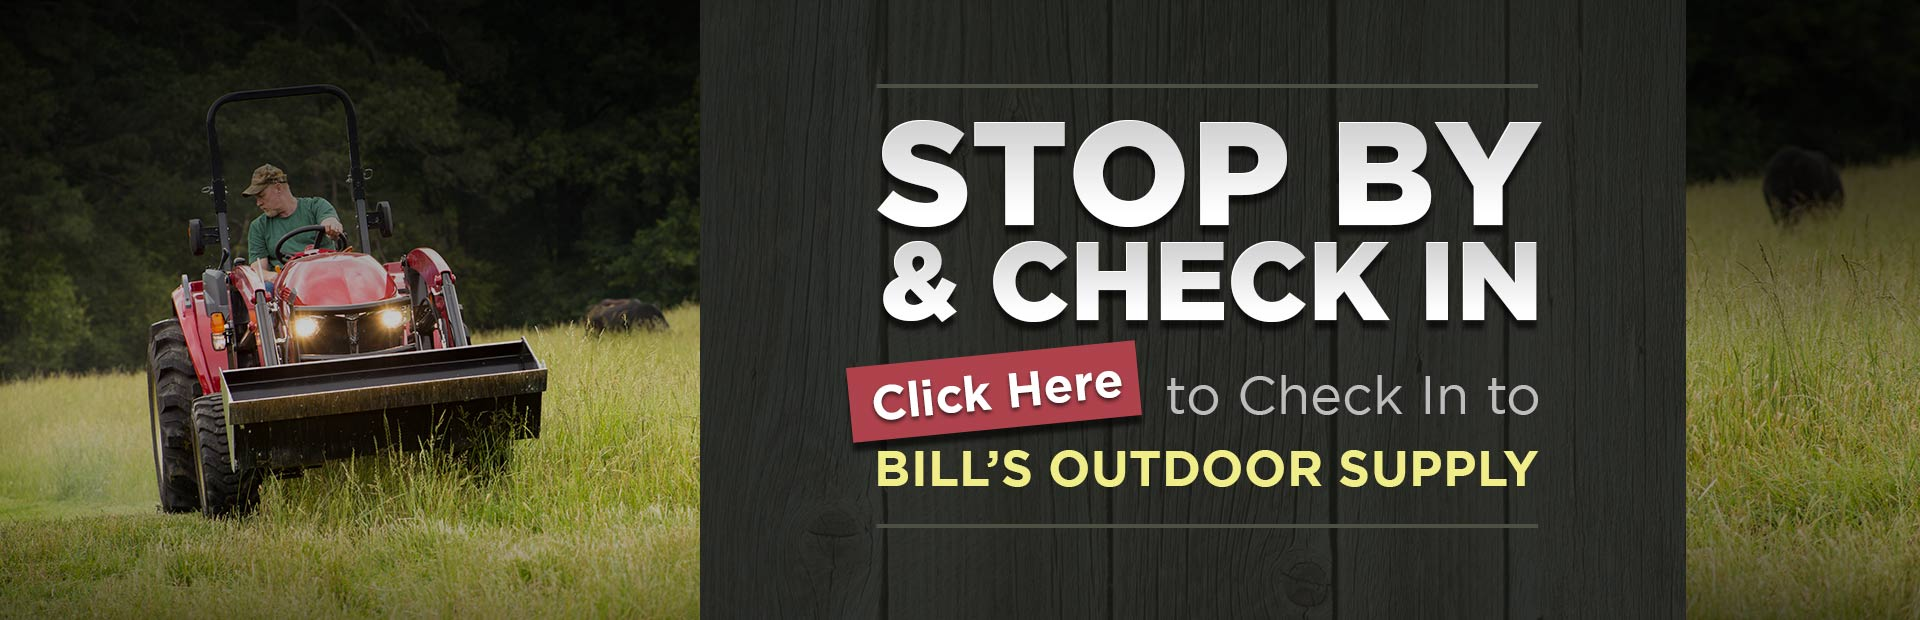 Click here to check in to Bill's Outdoor Supply.